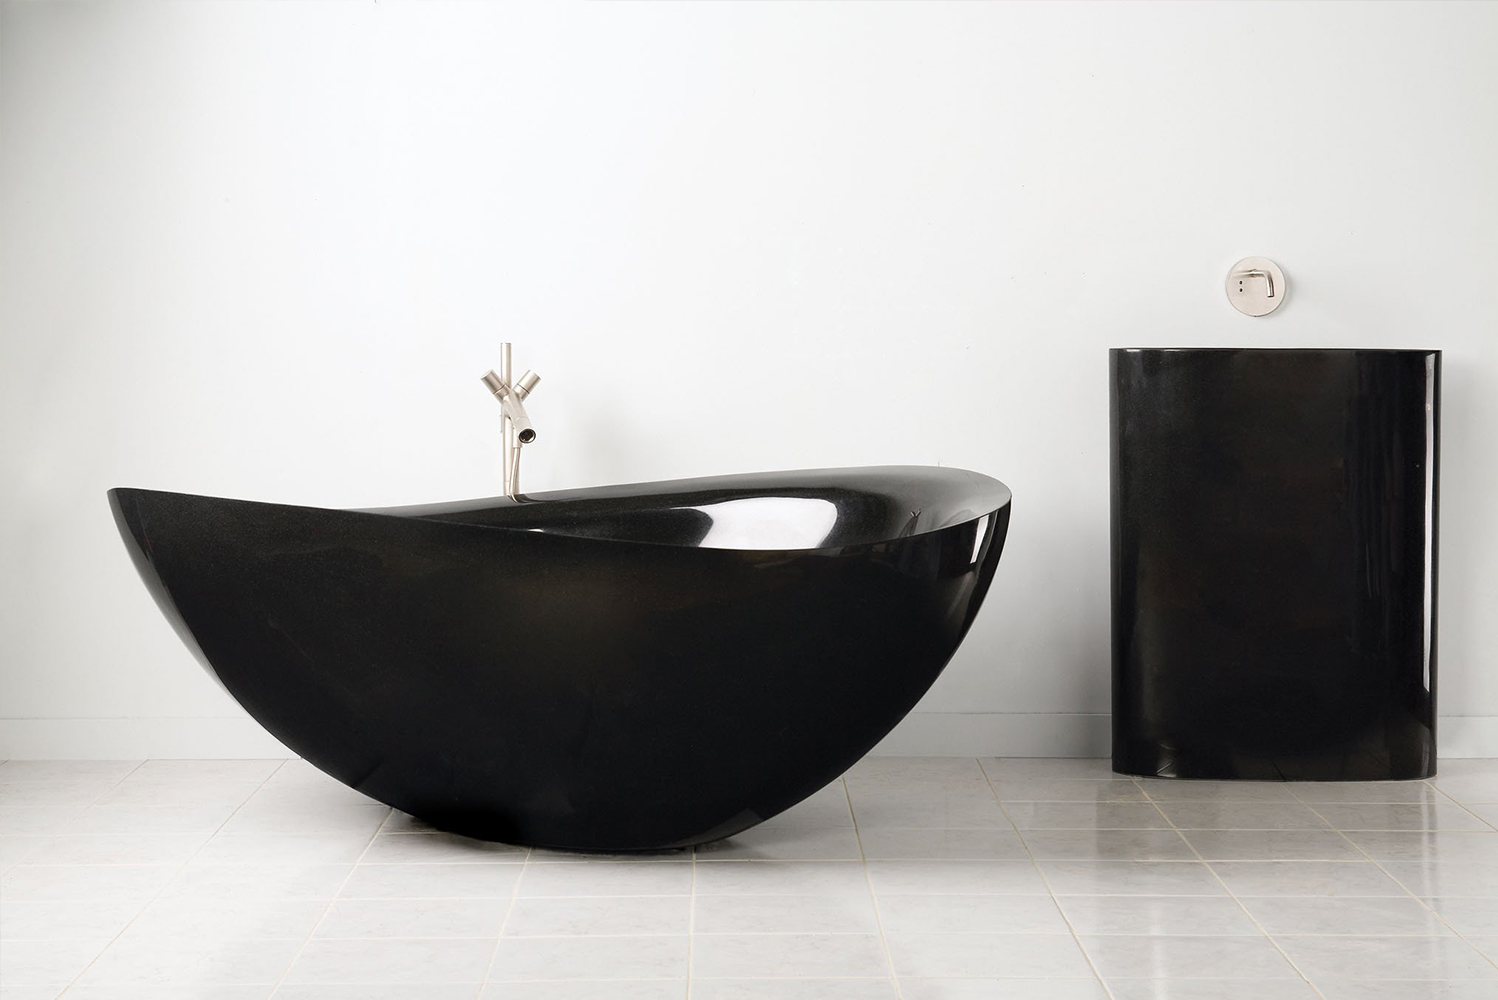 The piece features a unique shape that enables the bather to slip into it.